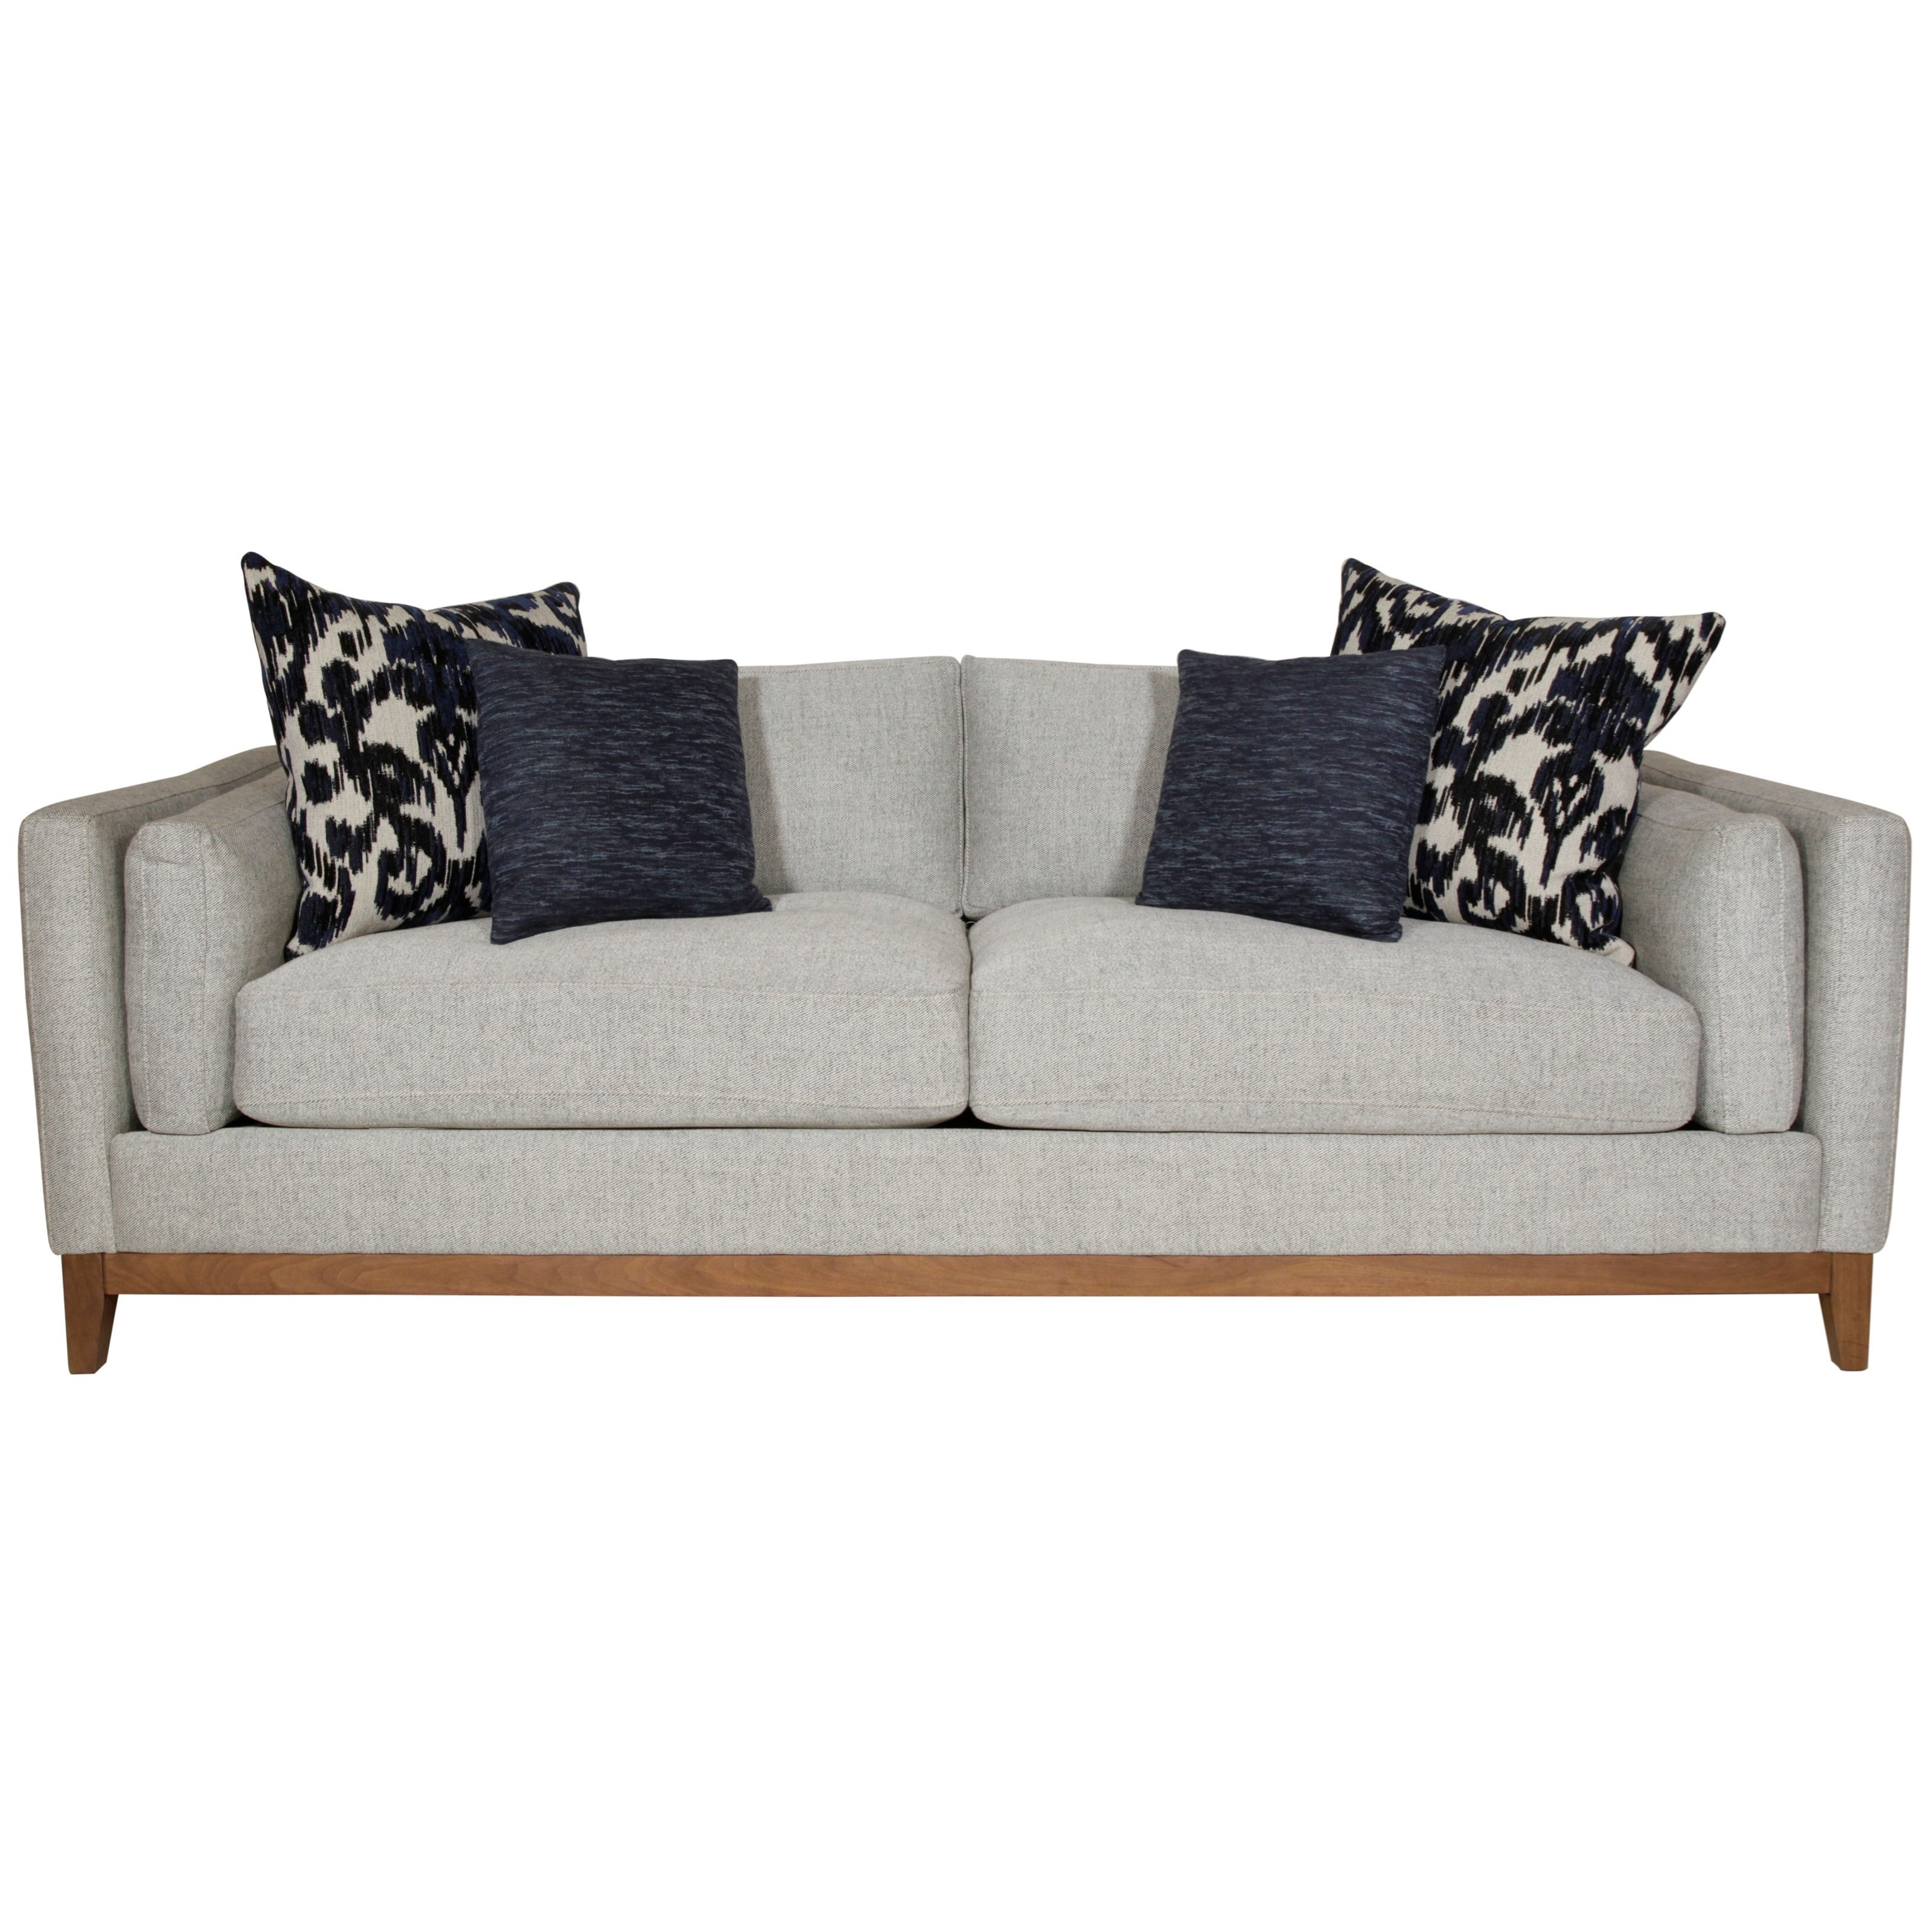 Jonathan Louis Kelsey Accent Chair: Jonathan Louis Kelsey Sofa